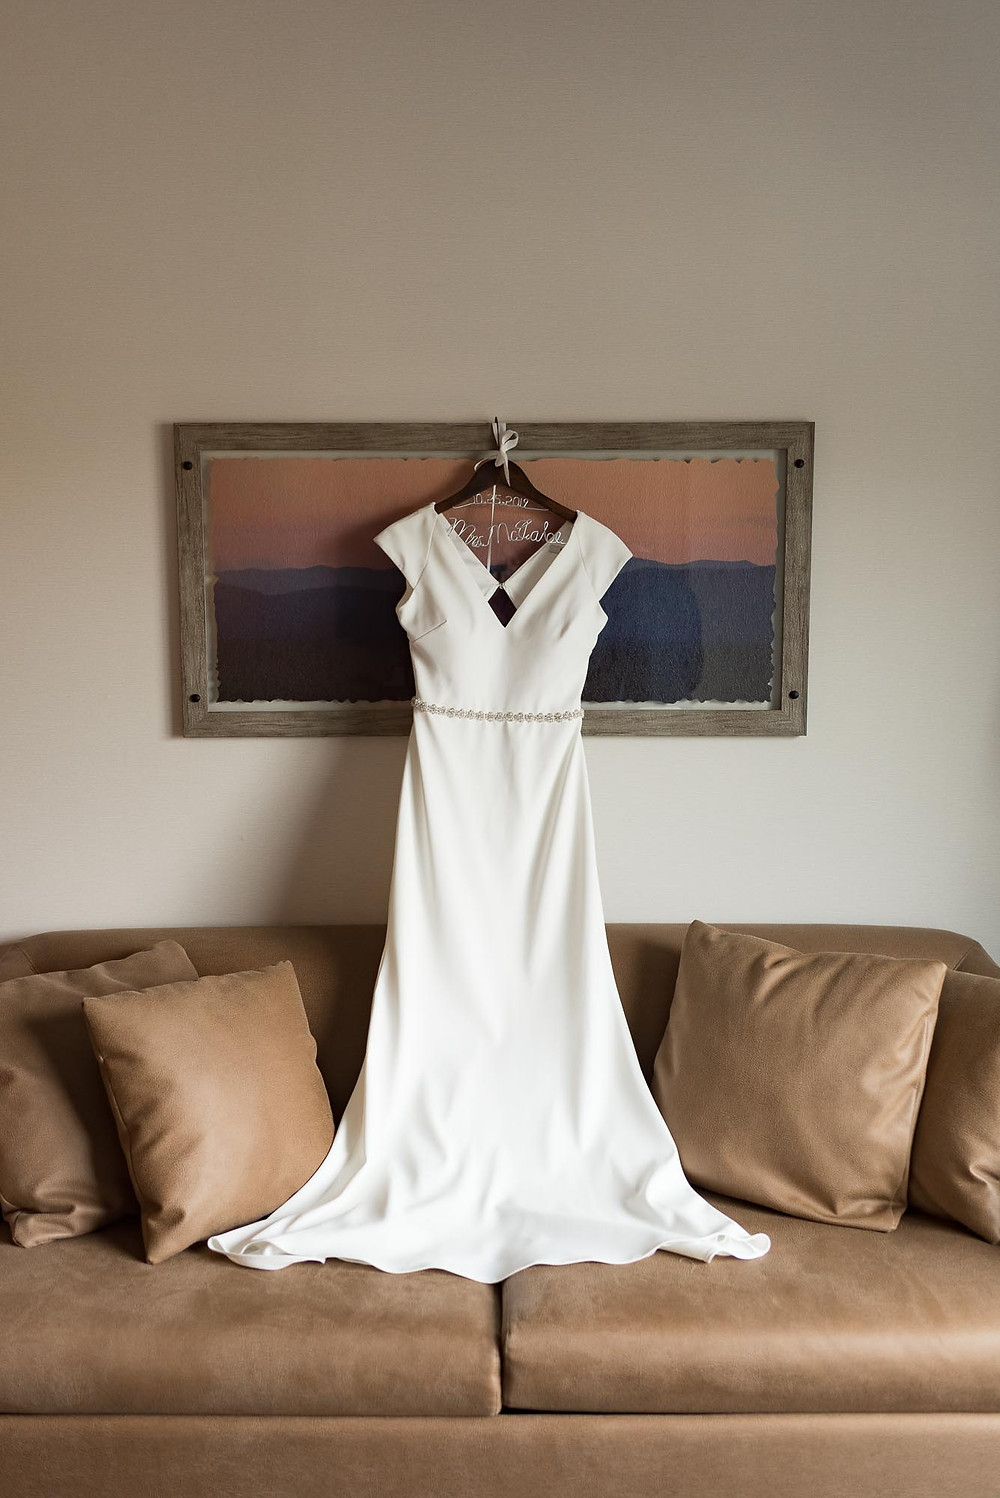 Badgley Mischka Sawyer Gown at Valley Forge Pennsylvania Wedding